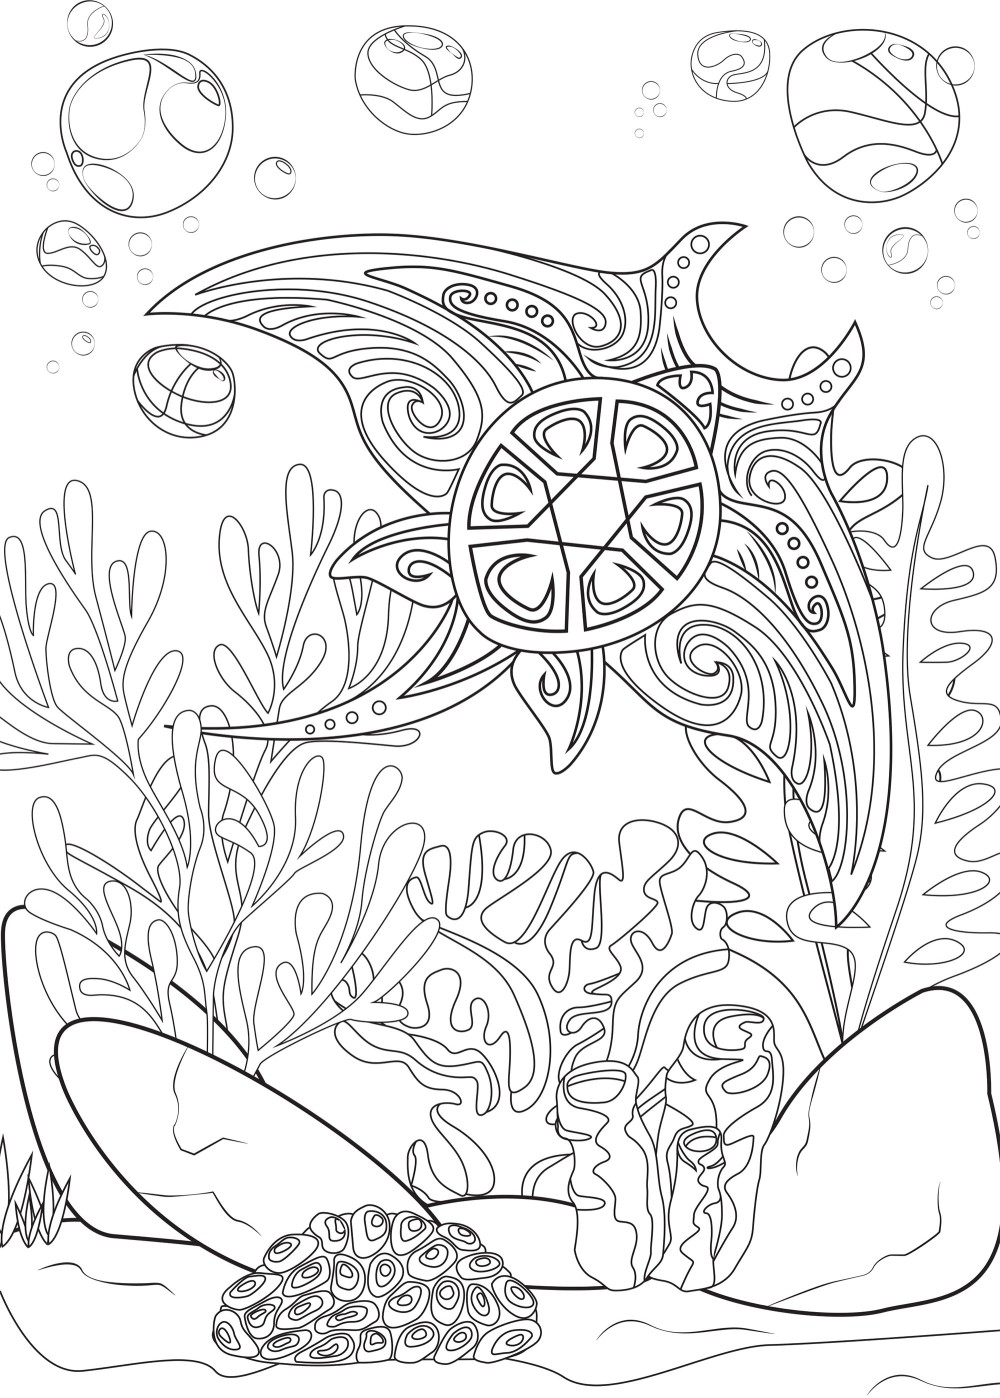 coloring-ray-and-turtle